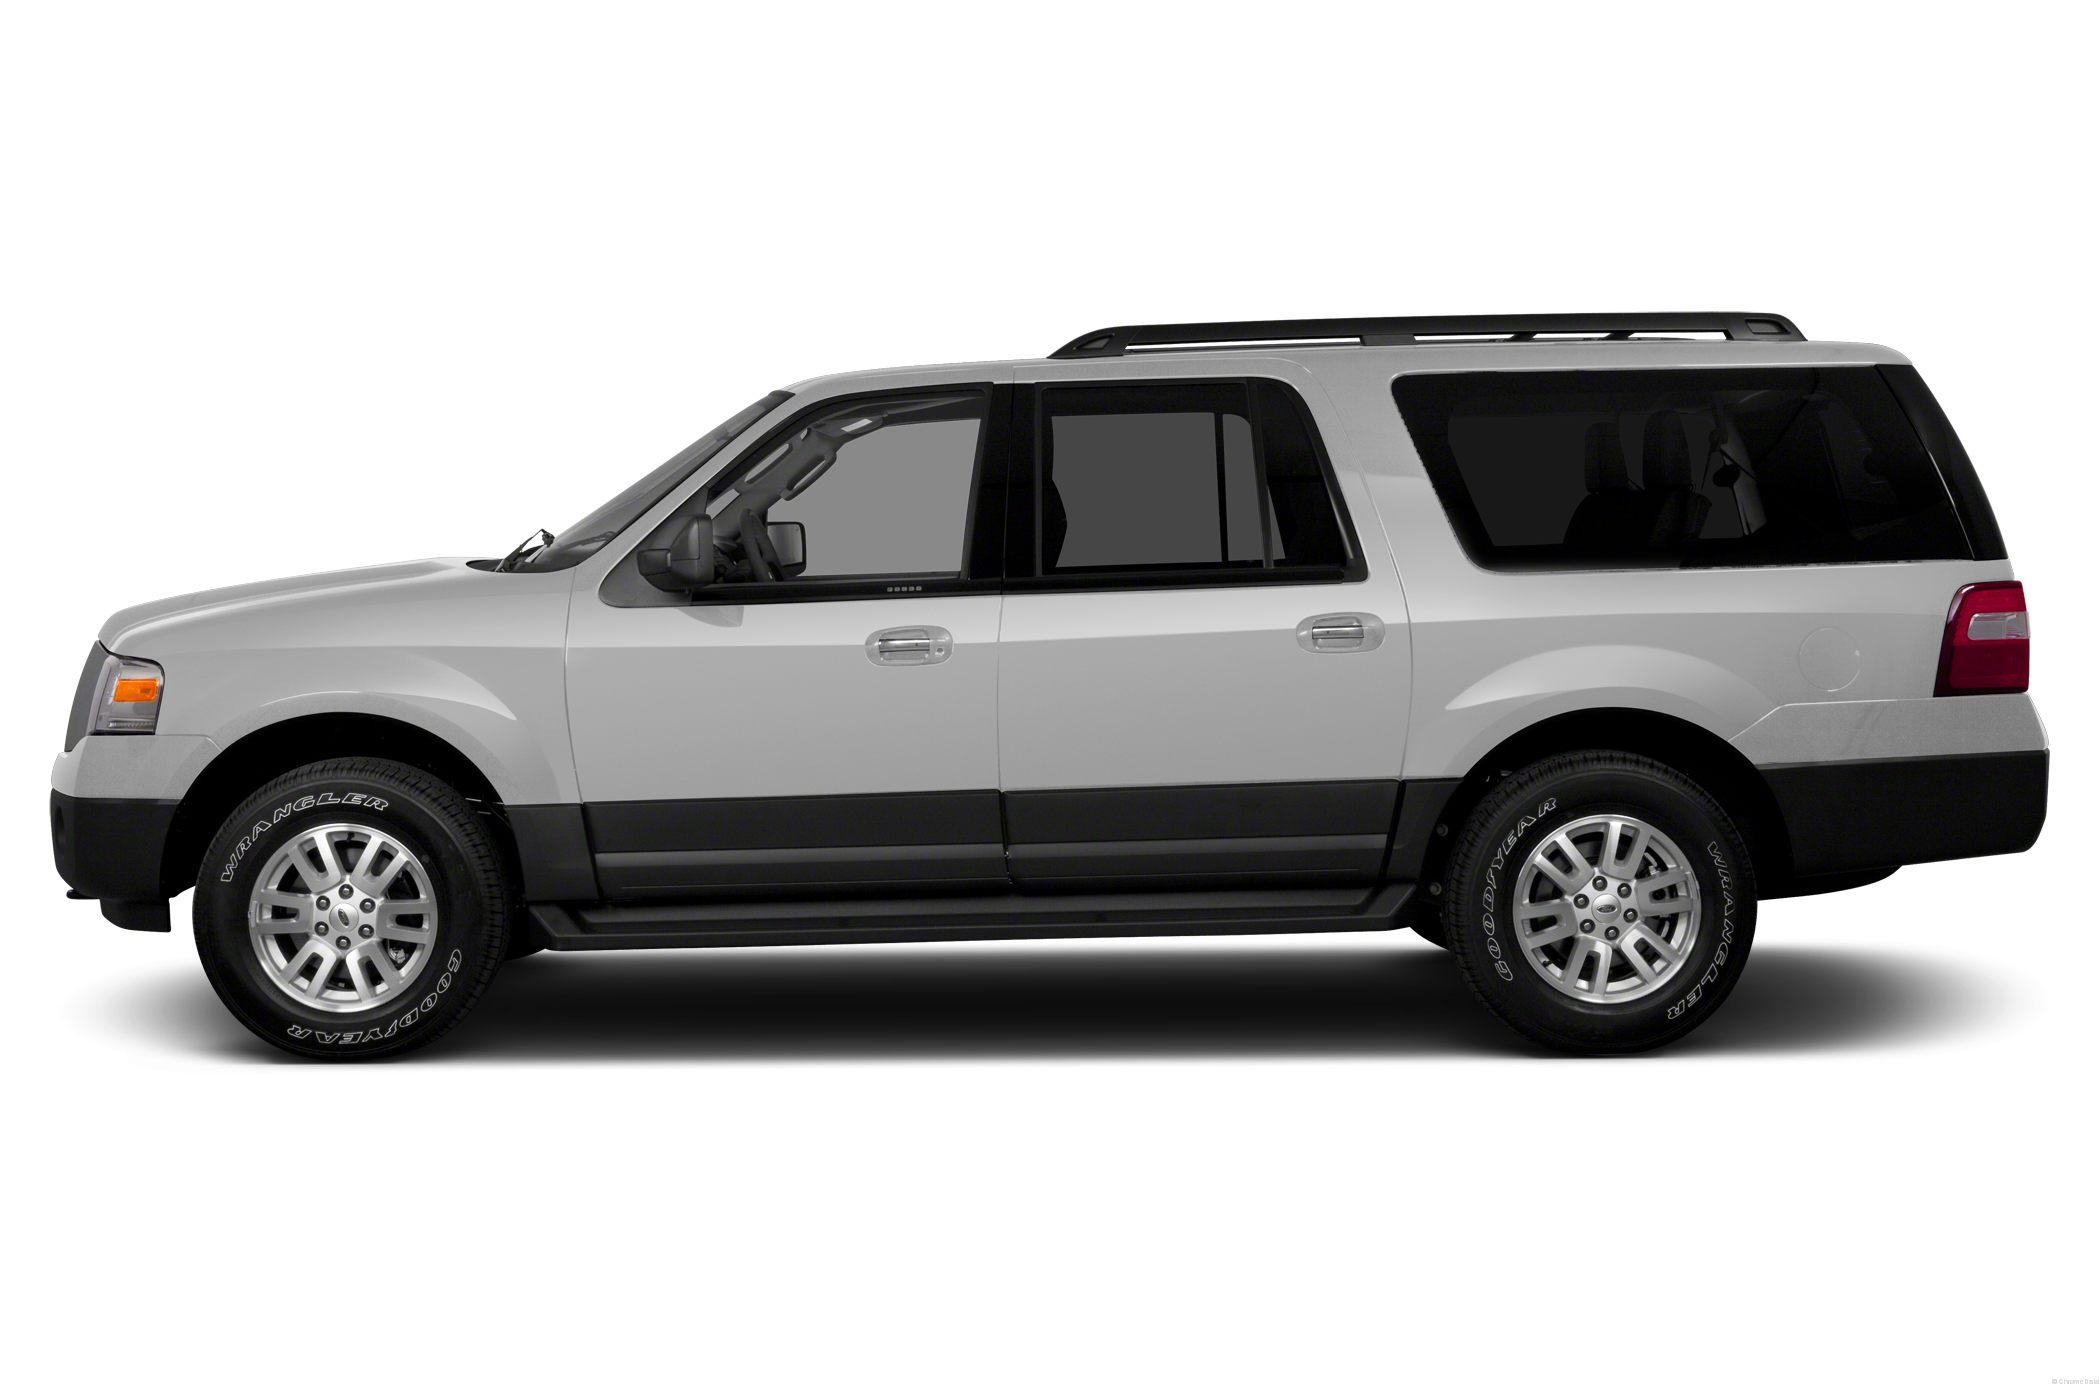 2013 Ford Expedition Image 16